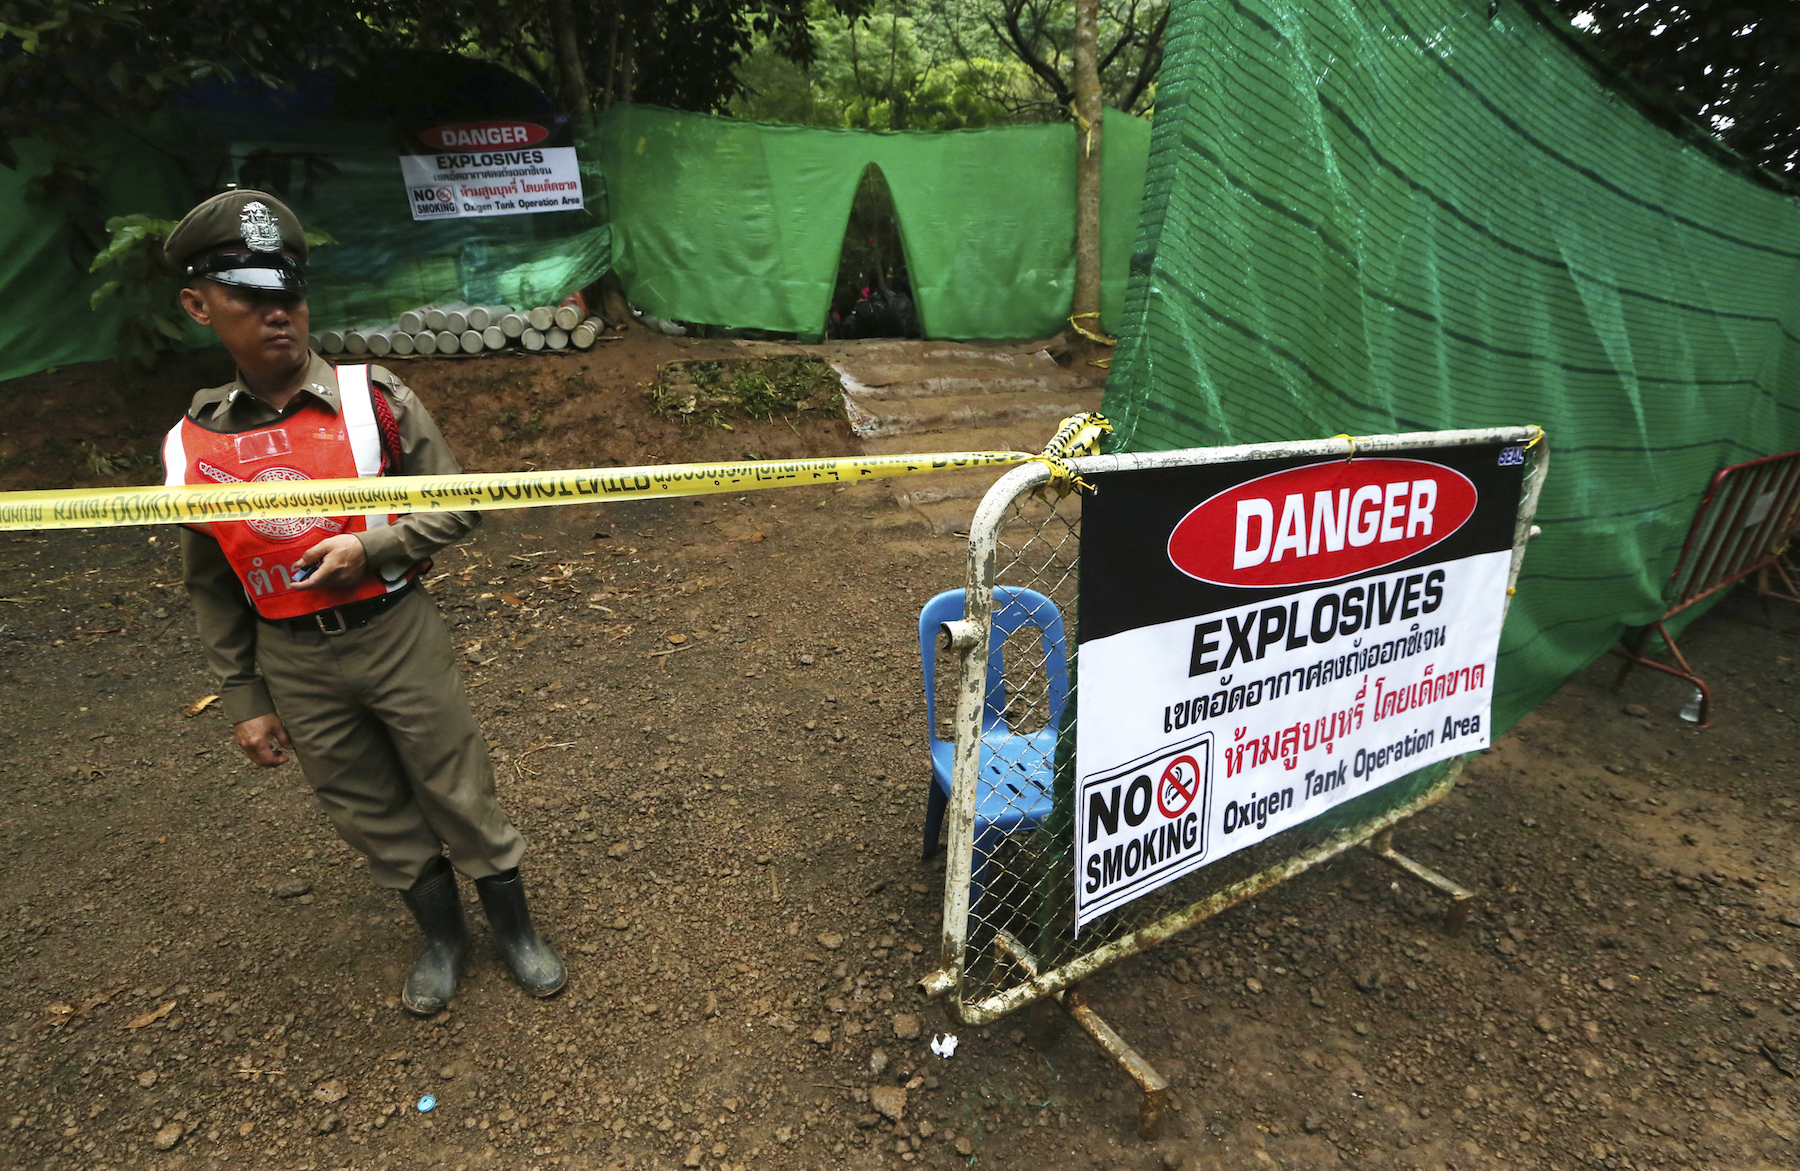 "<div class=""meta image-caption""><div class=""origin-logo origin-image ap""><span>AP</span></div><span class=""caption-text"">Thai police stand guard near a cave where 12 boys and their soccer coach have been trapped since June 23, in Mae Sai, Chiang Rai province, in northern Thailand. (AP Photo/Sakchai Lalit)</span></div>"